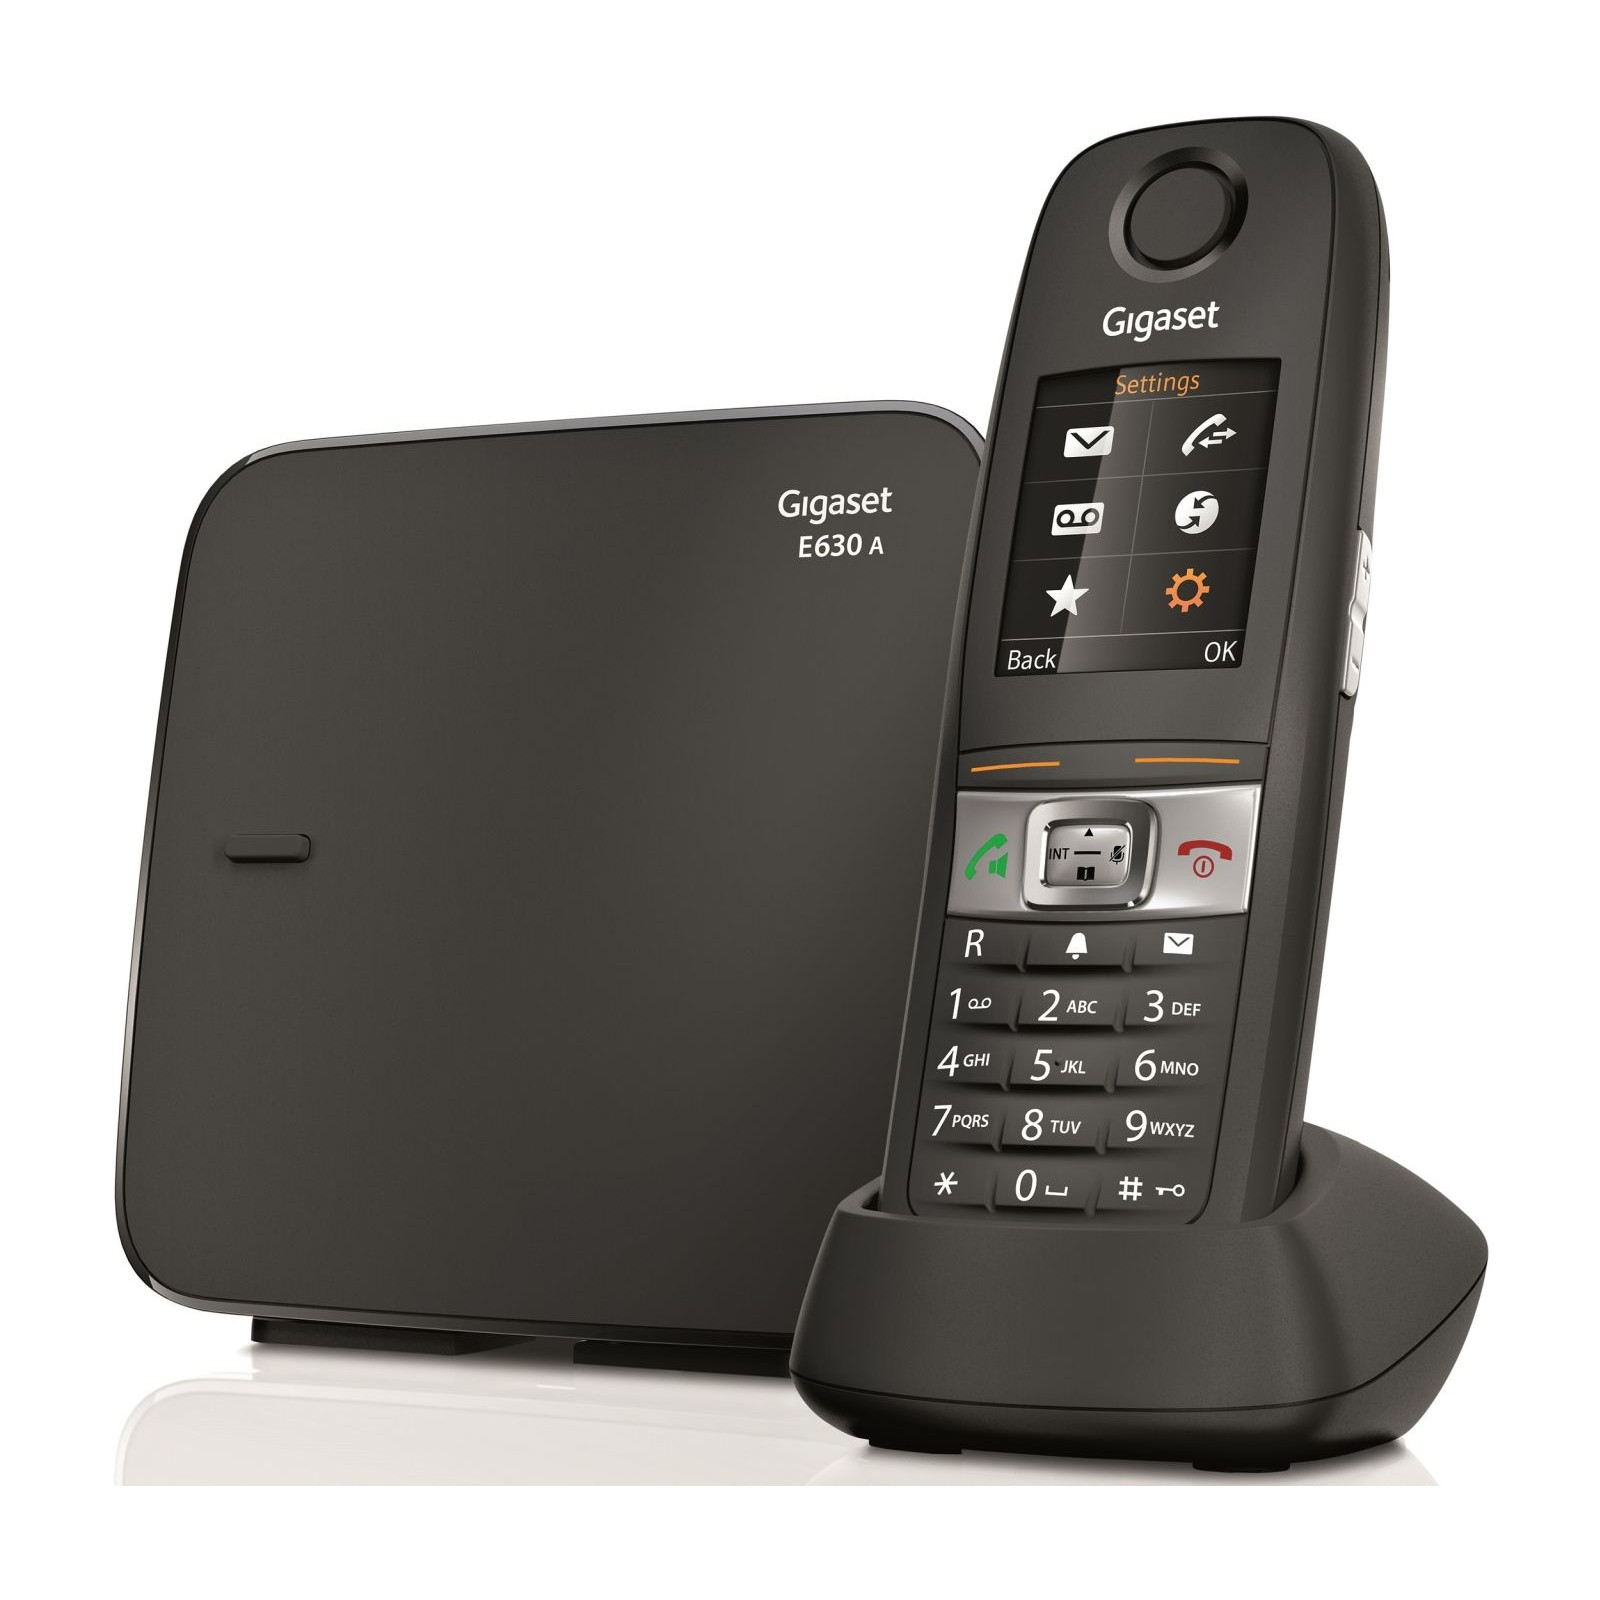 siemens gigaset e630a robust dect cordless phone ligo. Black Bedroom Furniture Sets. Home Design Ideas